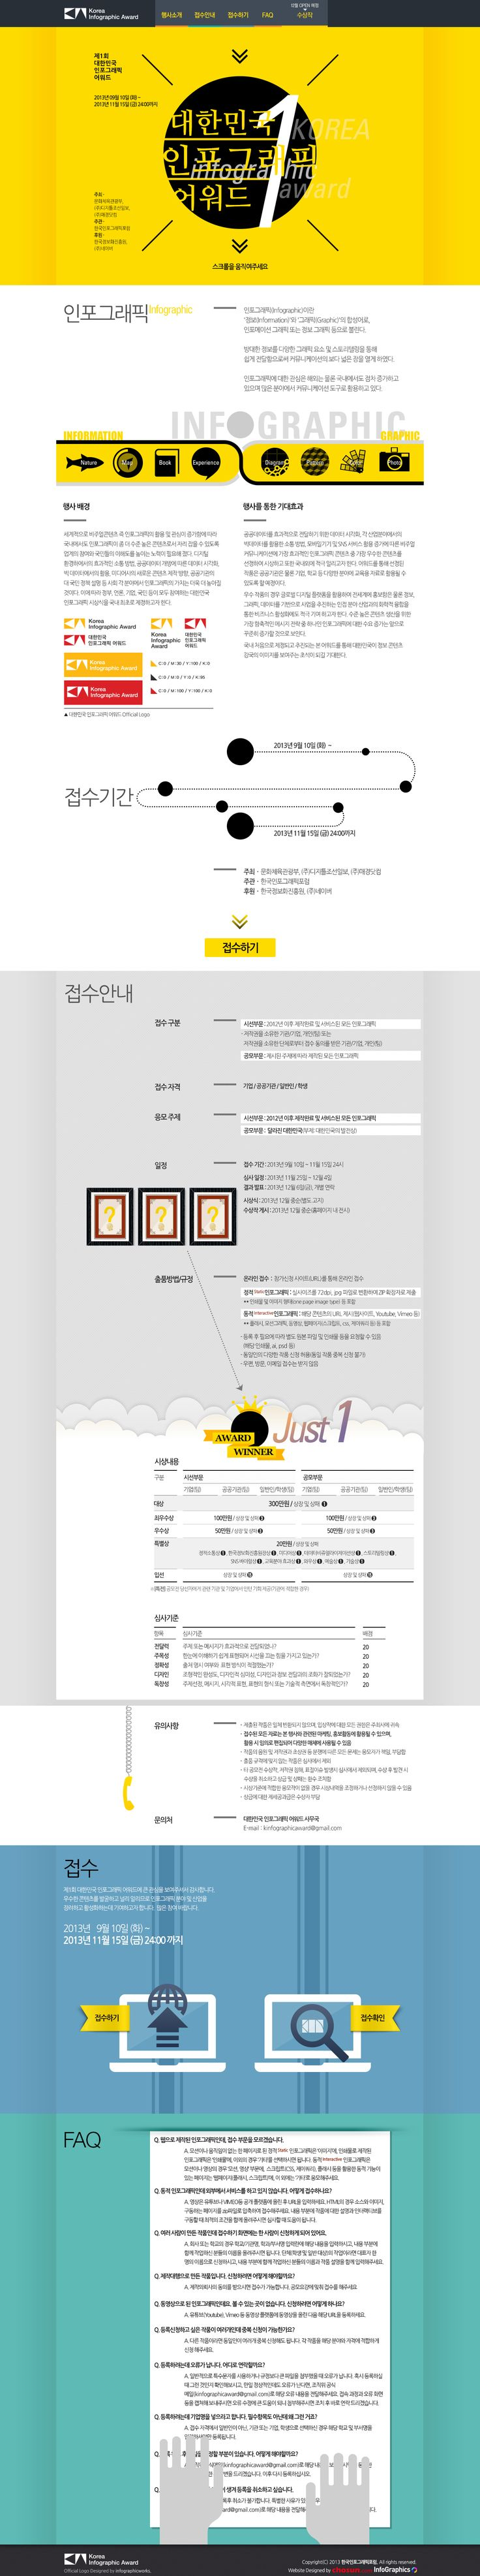 <제 1회 대한민국 인포그래픽 어워드 The 1st Korea Infographic Award> Awesome Interactive Web Design Work / Scroll down animation  >>>>>>>>>> www.kinfographicaward.com